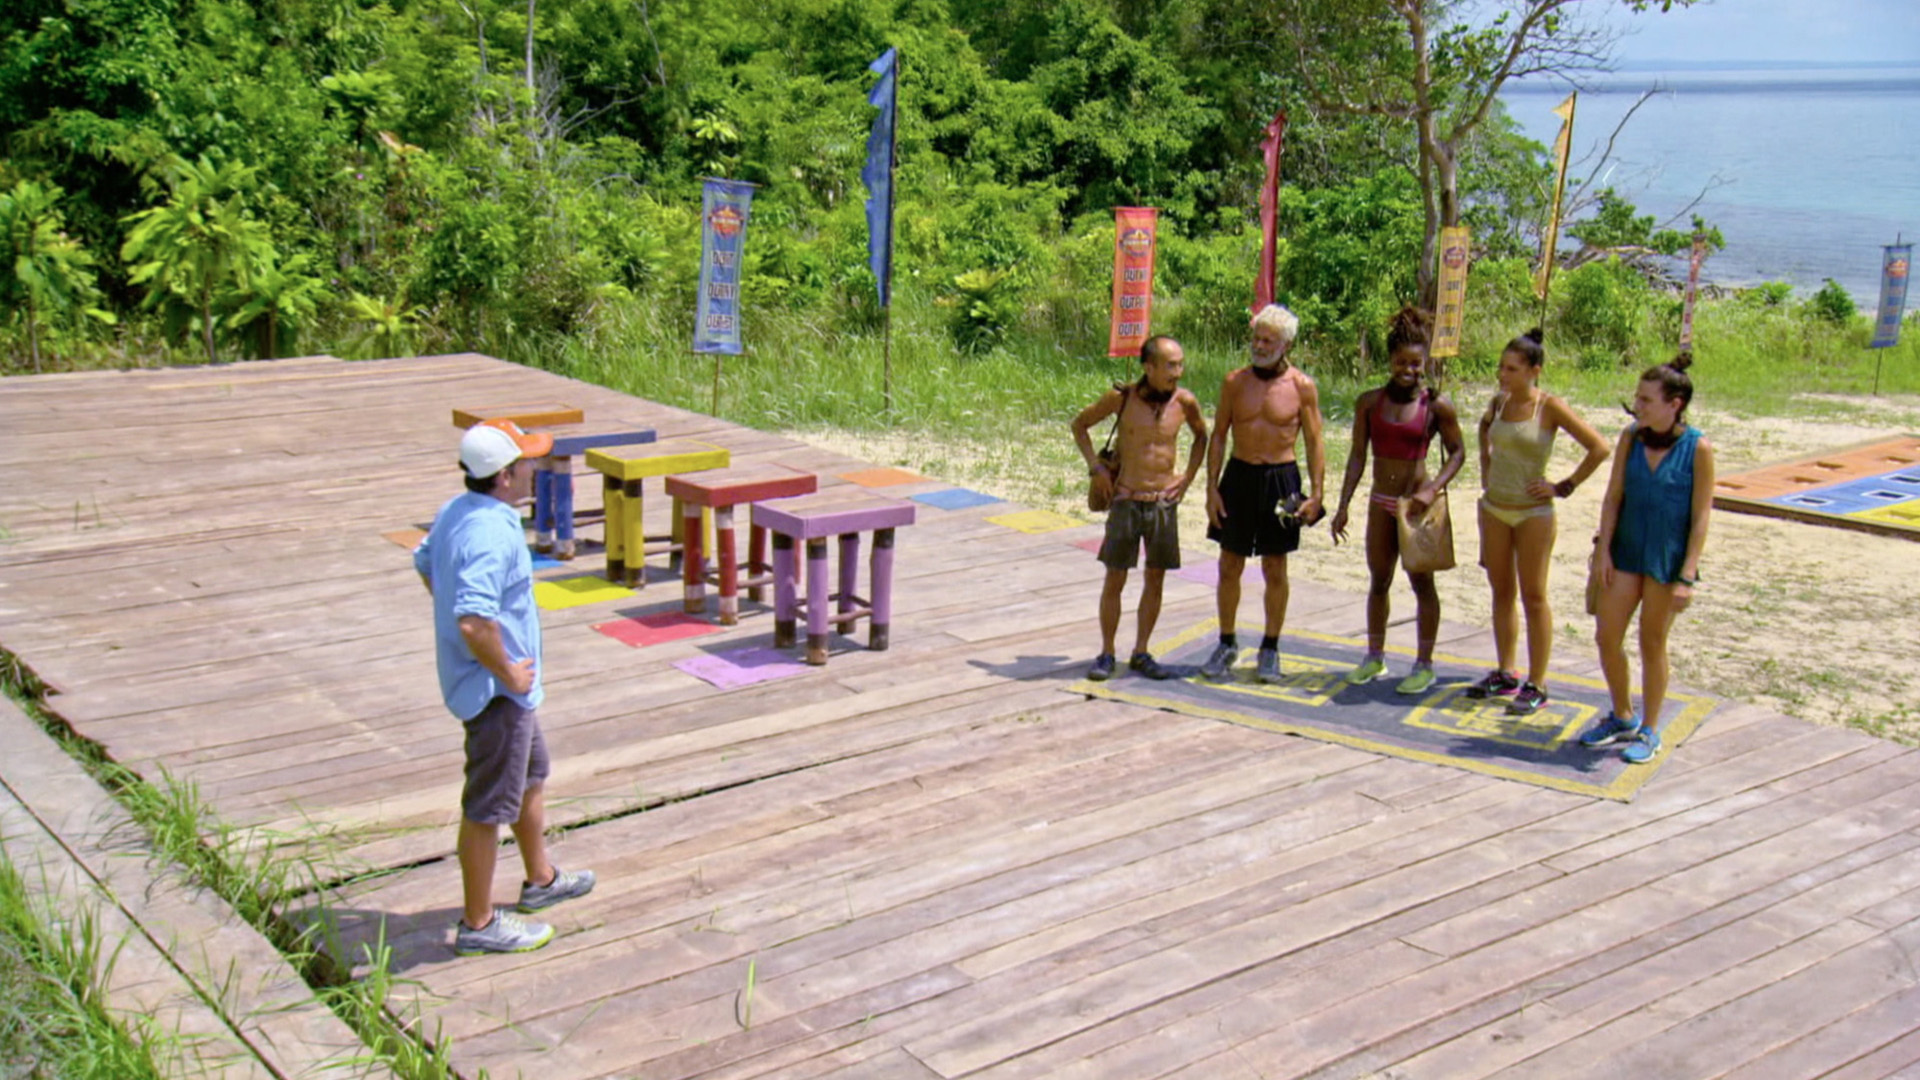 Host Jeff Probst instructs the Final 5 on how the Reward Challenge will work.